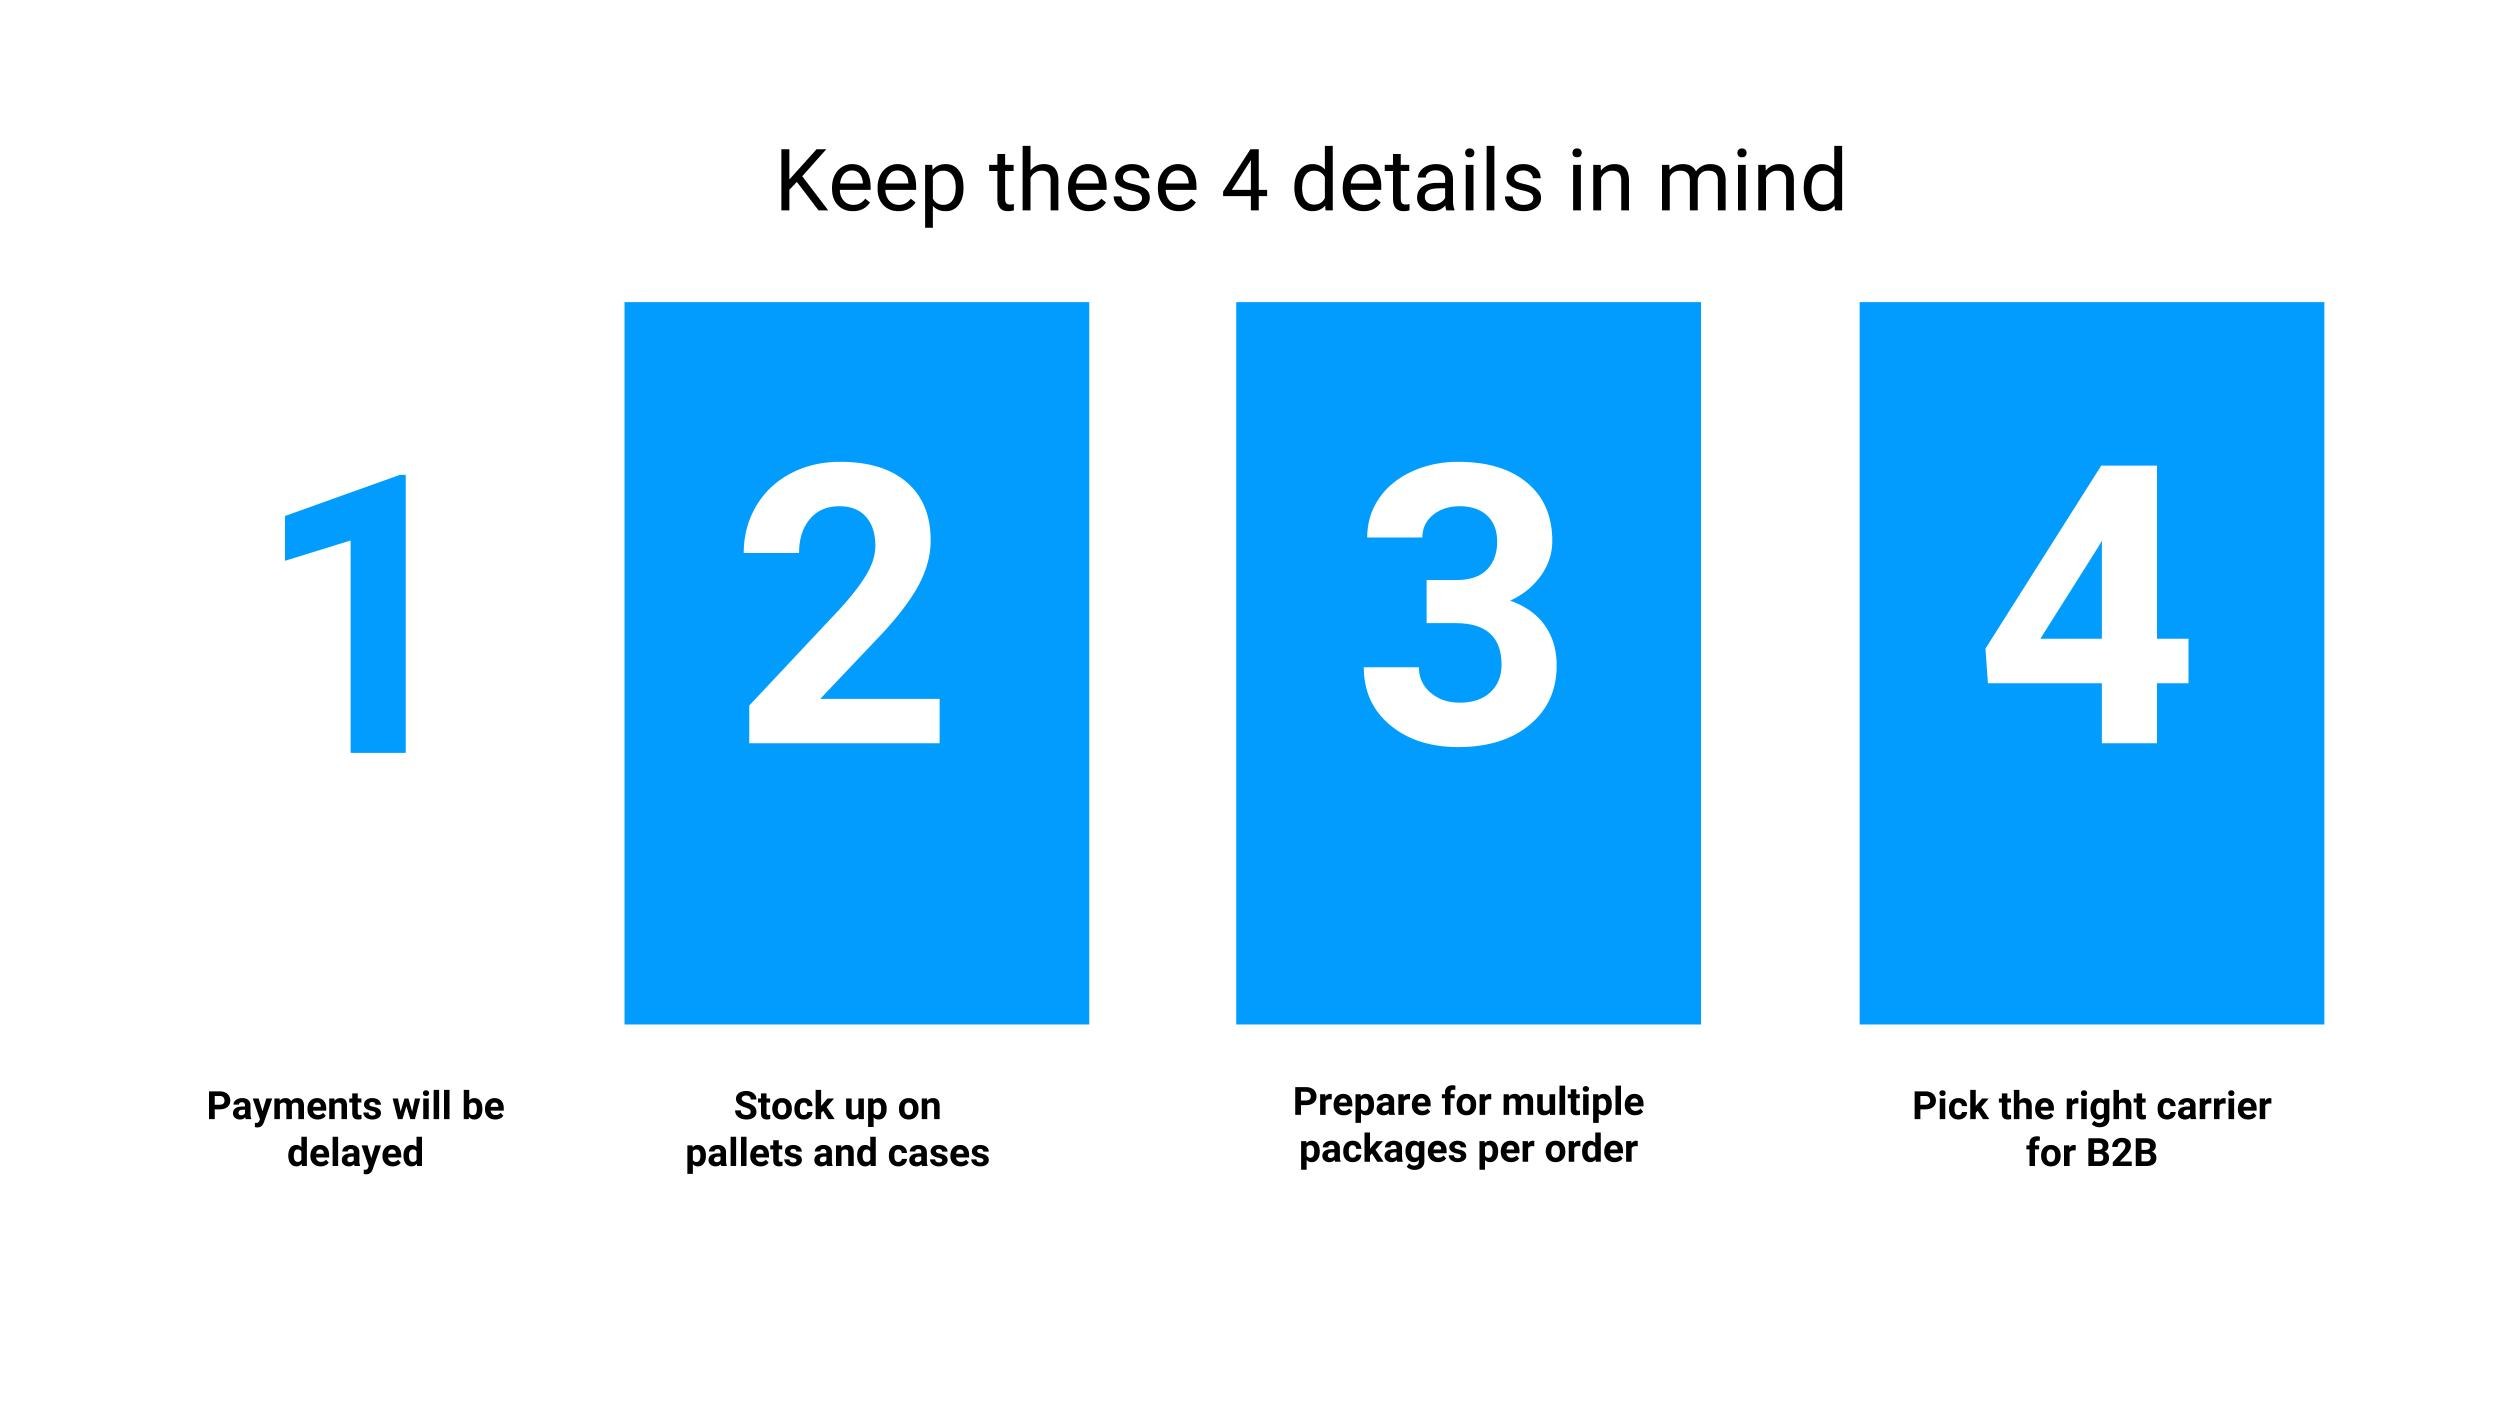 4 details every B2B business should remember (2).jpg